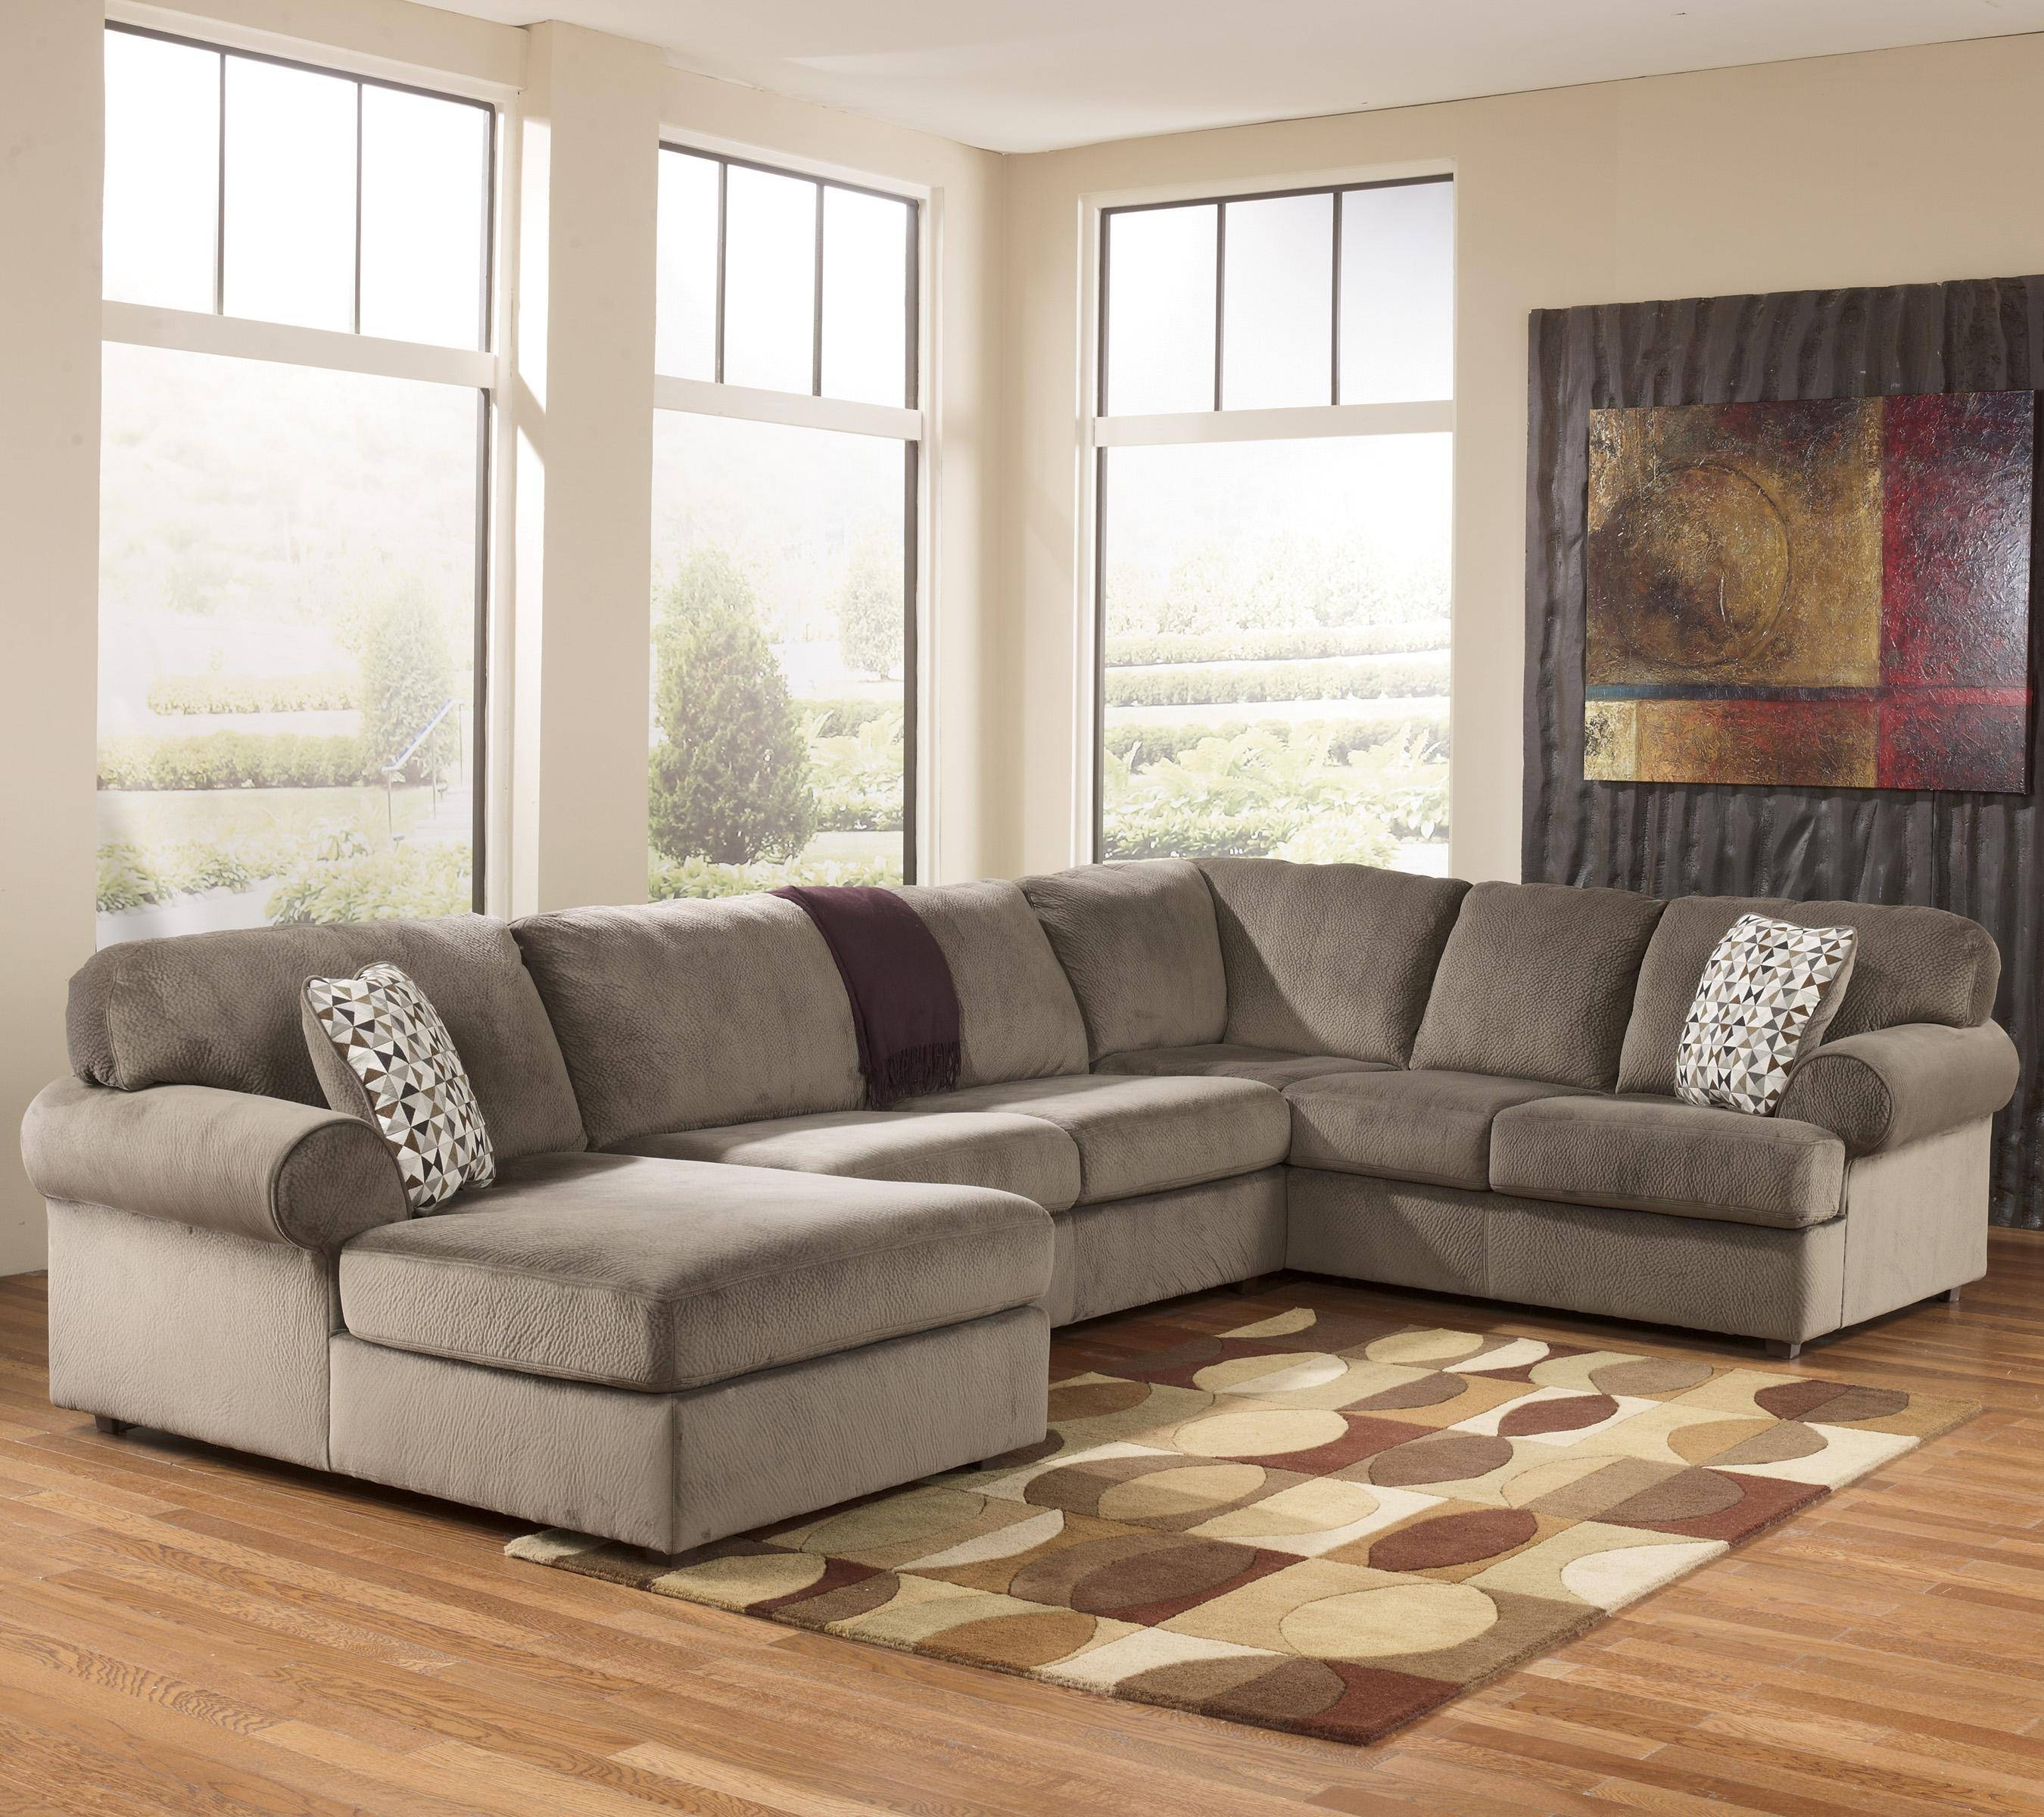 Furniture: Using Outstanding Sectional Sofas Mn For Chic Home intended for Gold Sectional Sofa (Image 11 of 25)